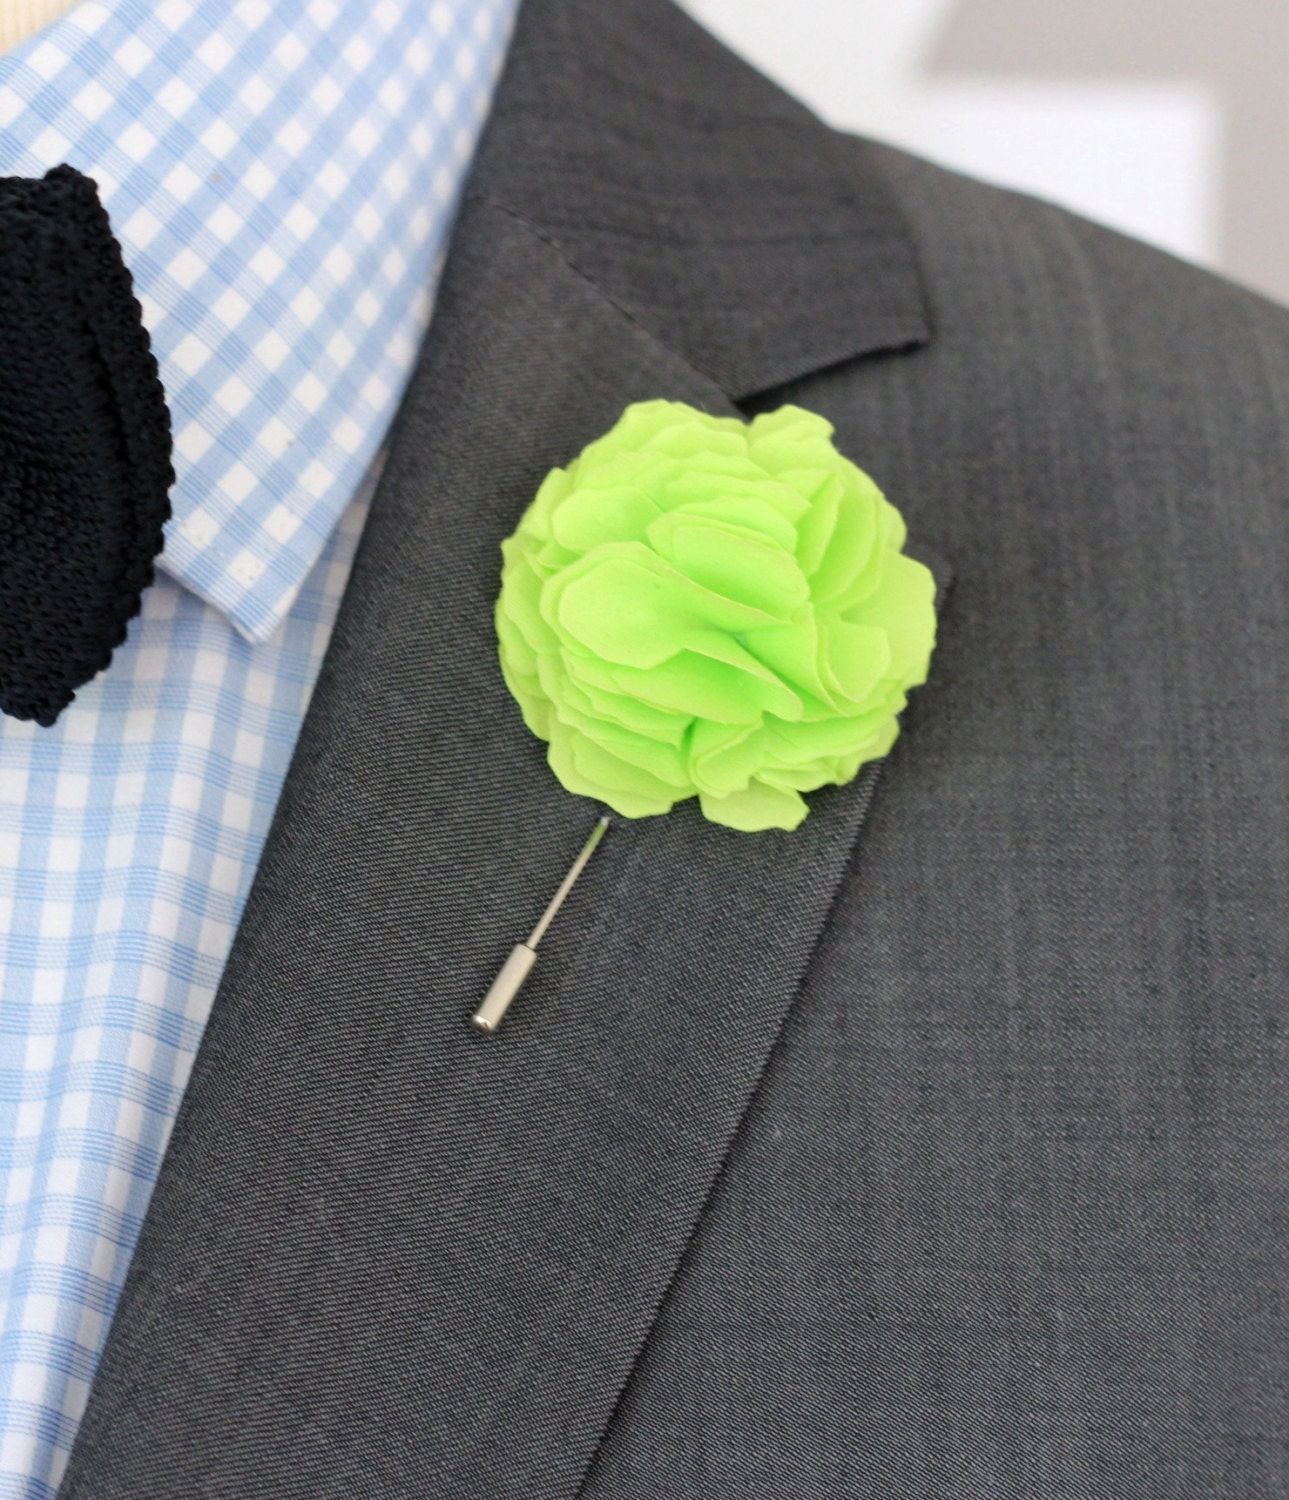 ginkgo retro dhgate pin leaf ut stick best rbvaevchnqgadyvbaatii boutonniere biloba brooch lapel tuxedo wedding men buttons under suit product com corsage for